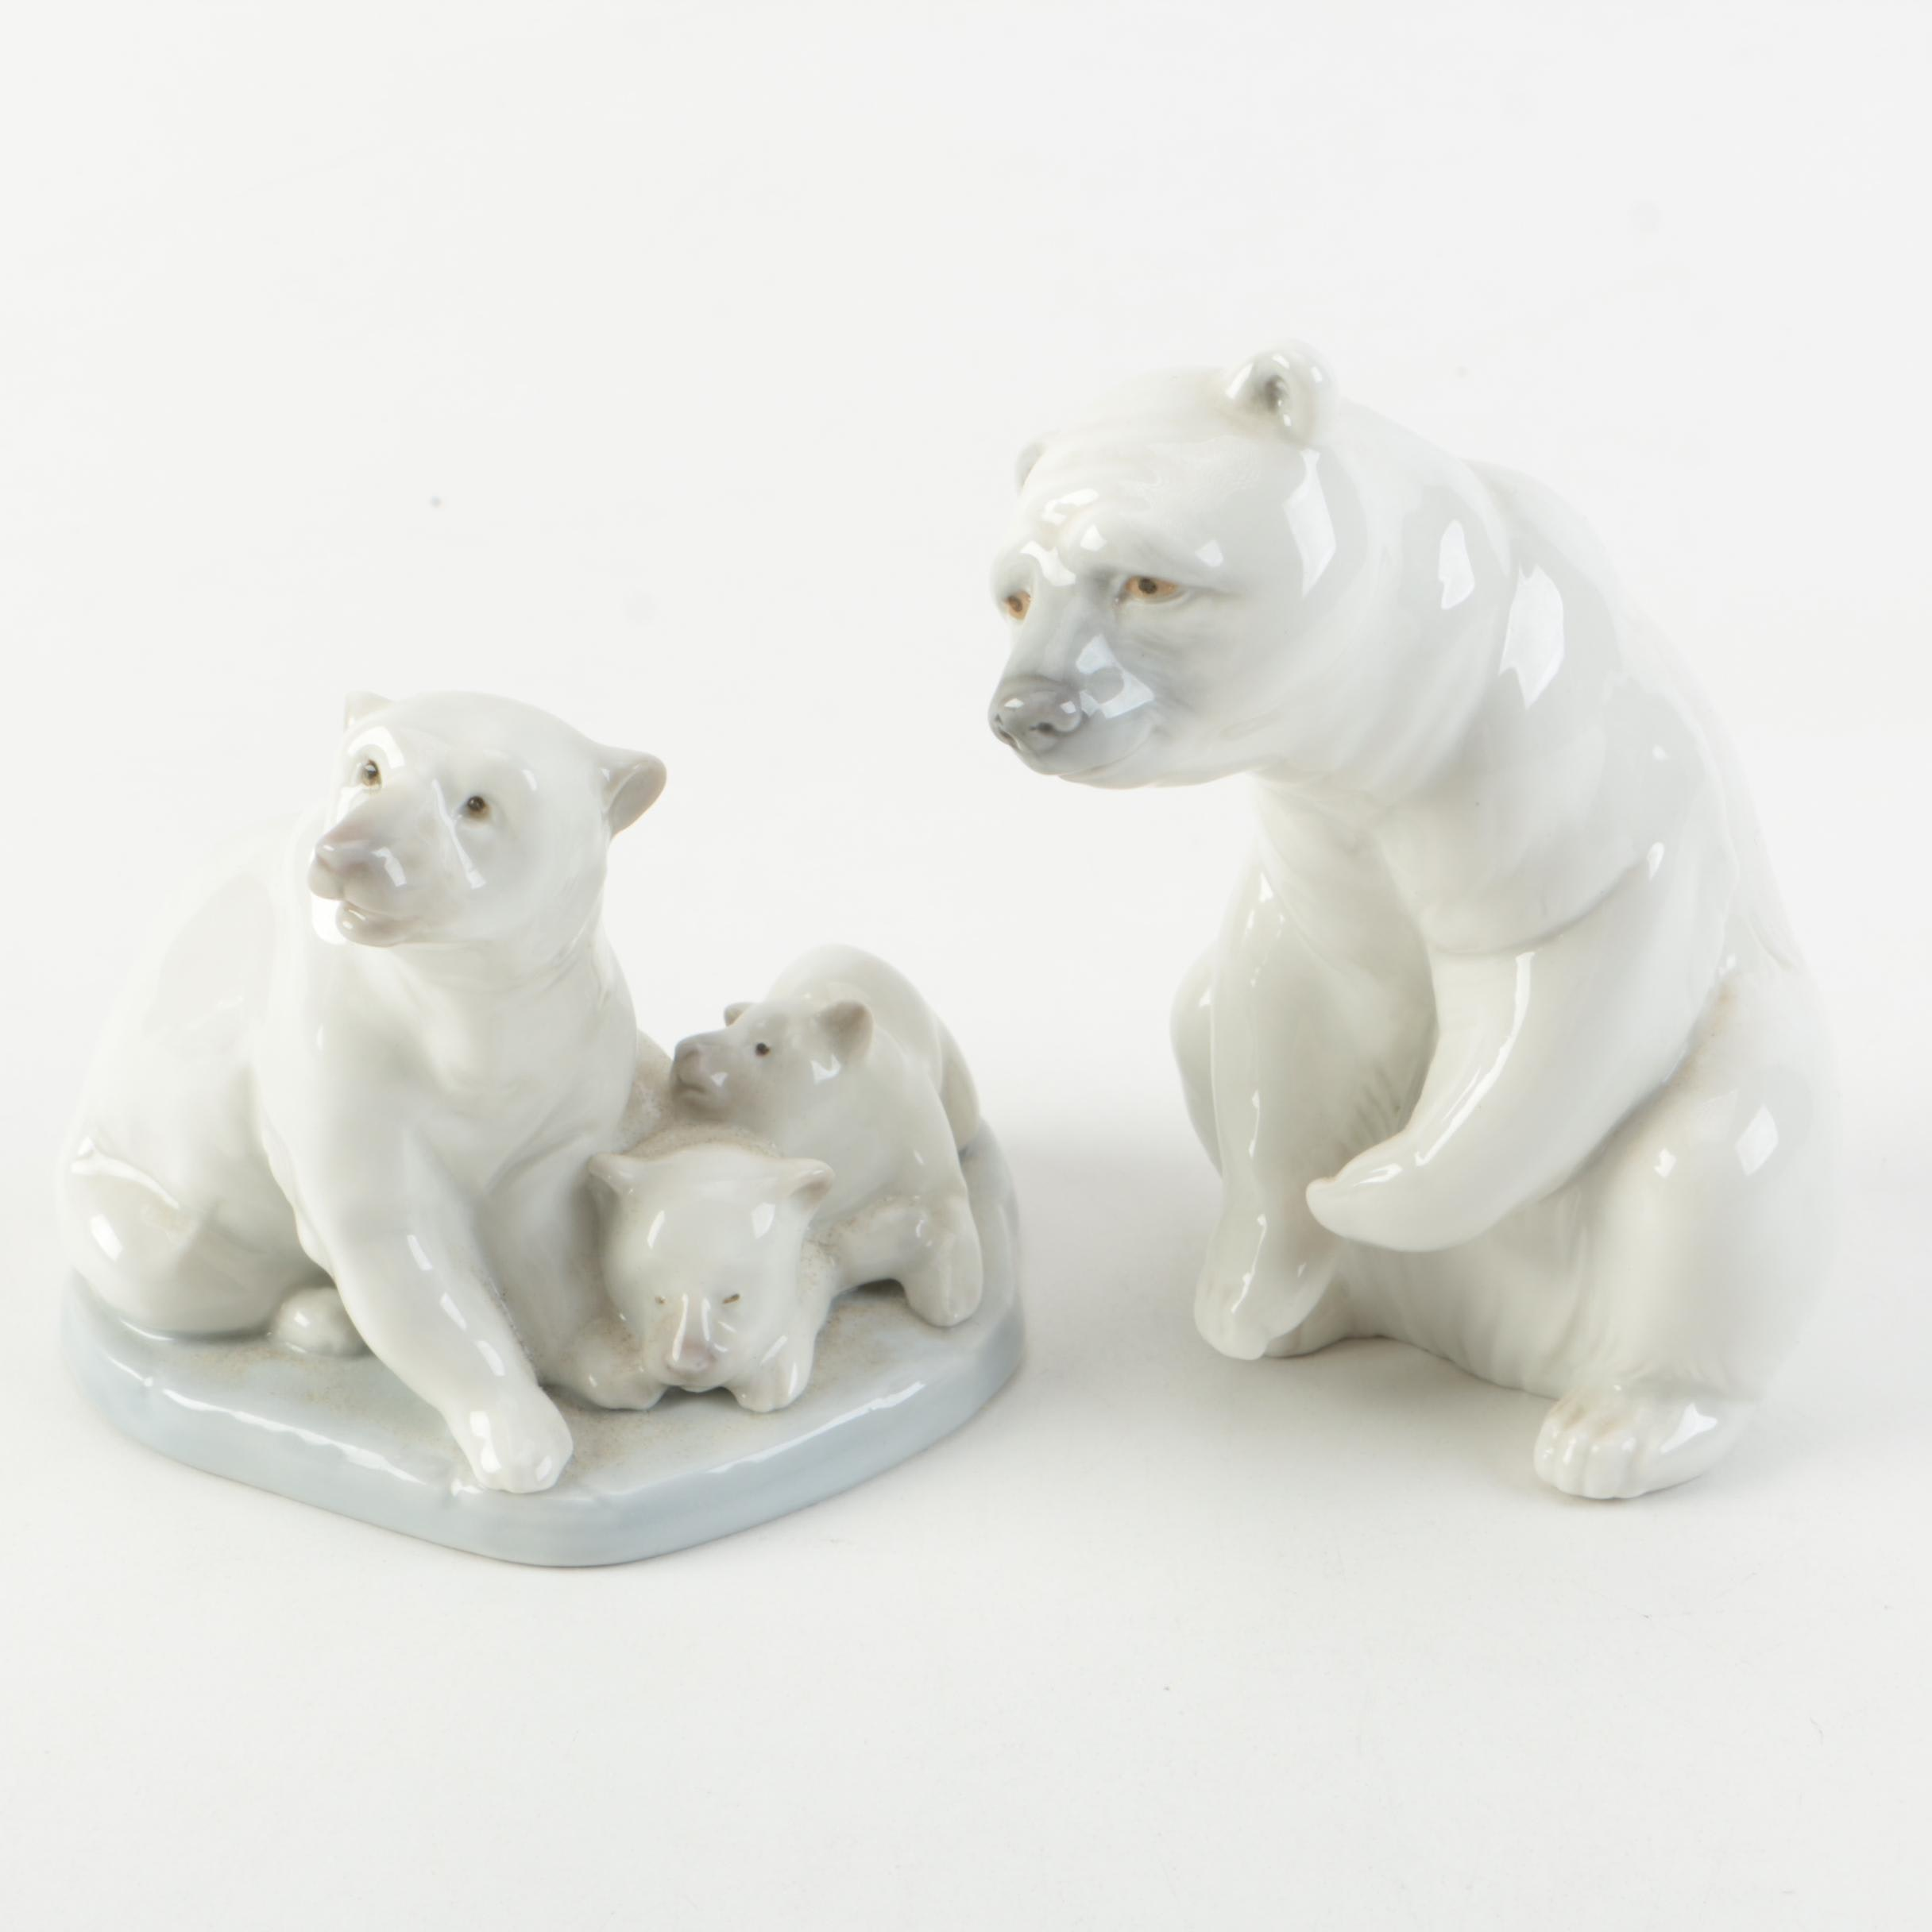 Vintage Lladró Porcelain Polar Bear Figurines